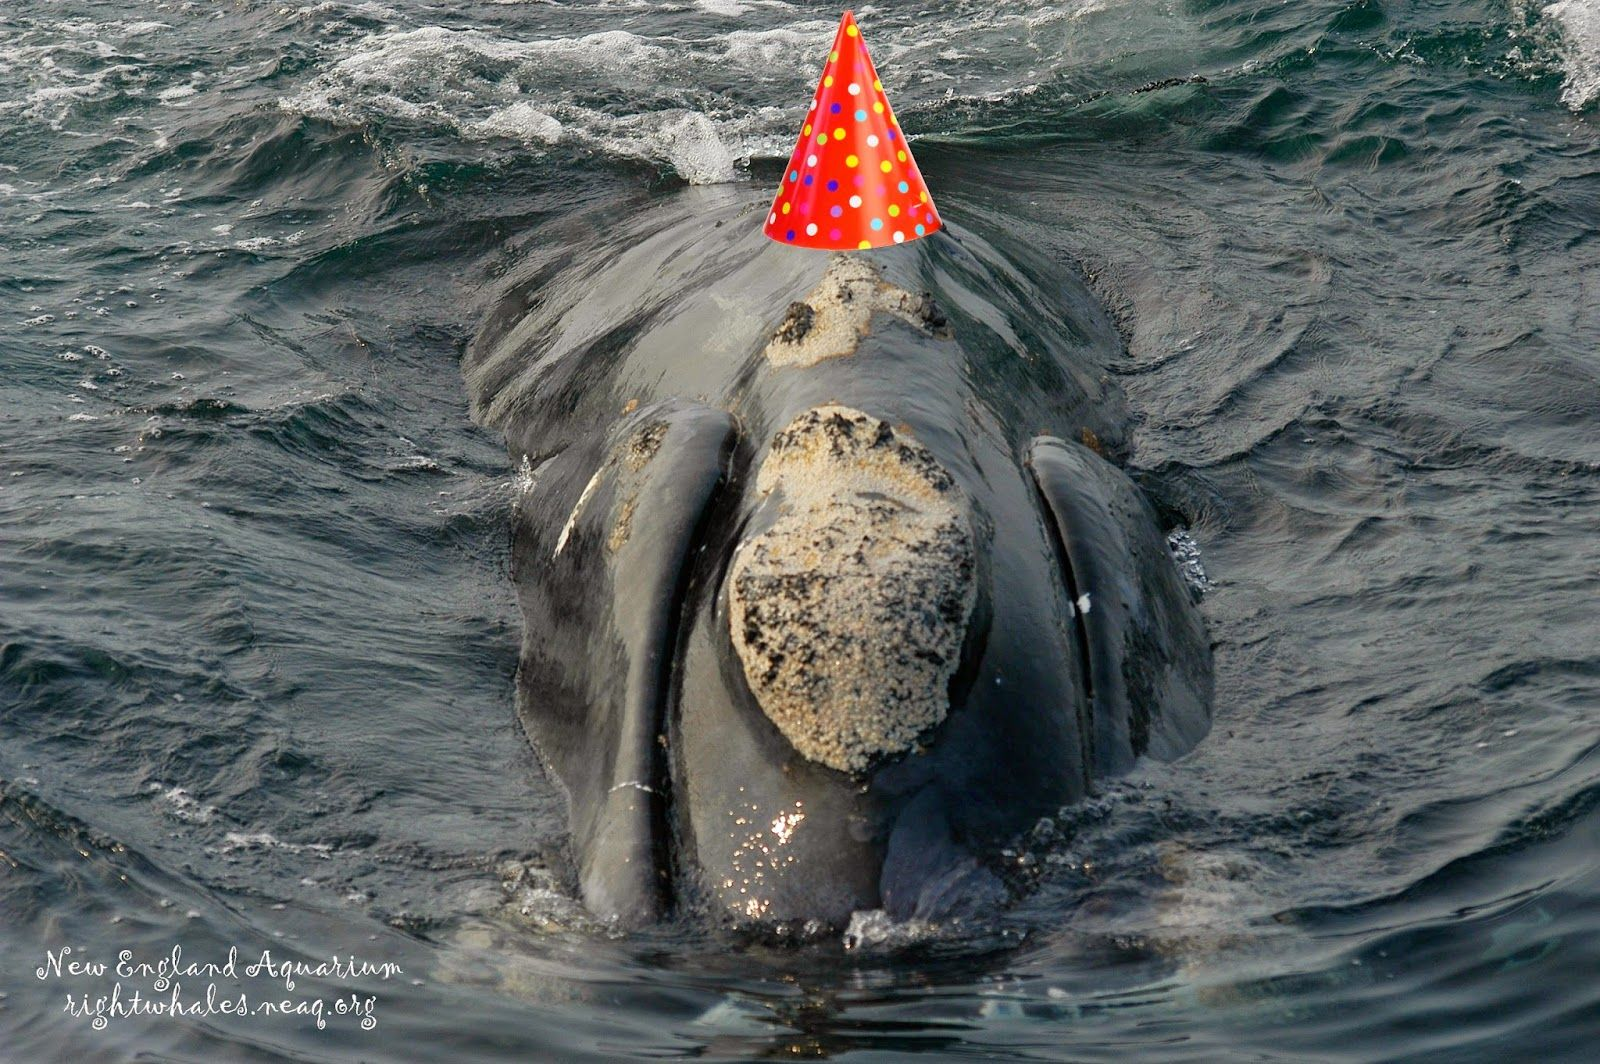 Right Whale Research Blog: Happy 20th Birthday, Shackleton!